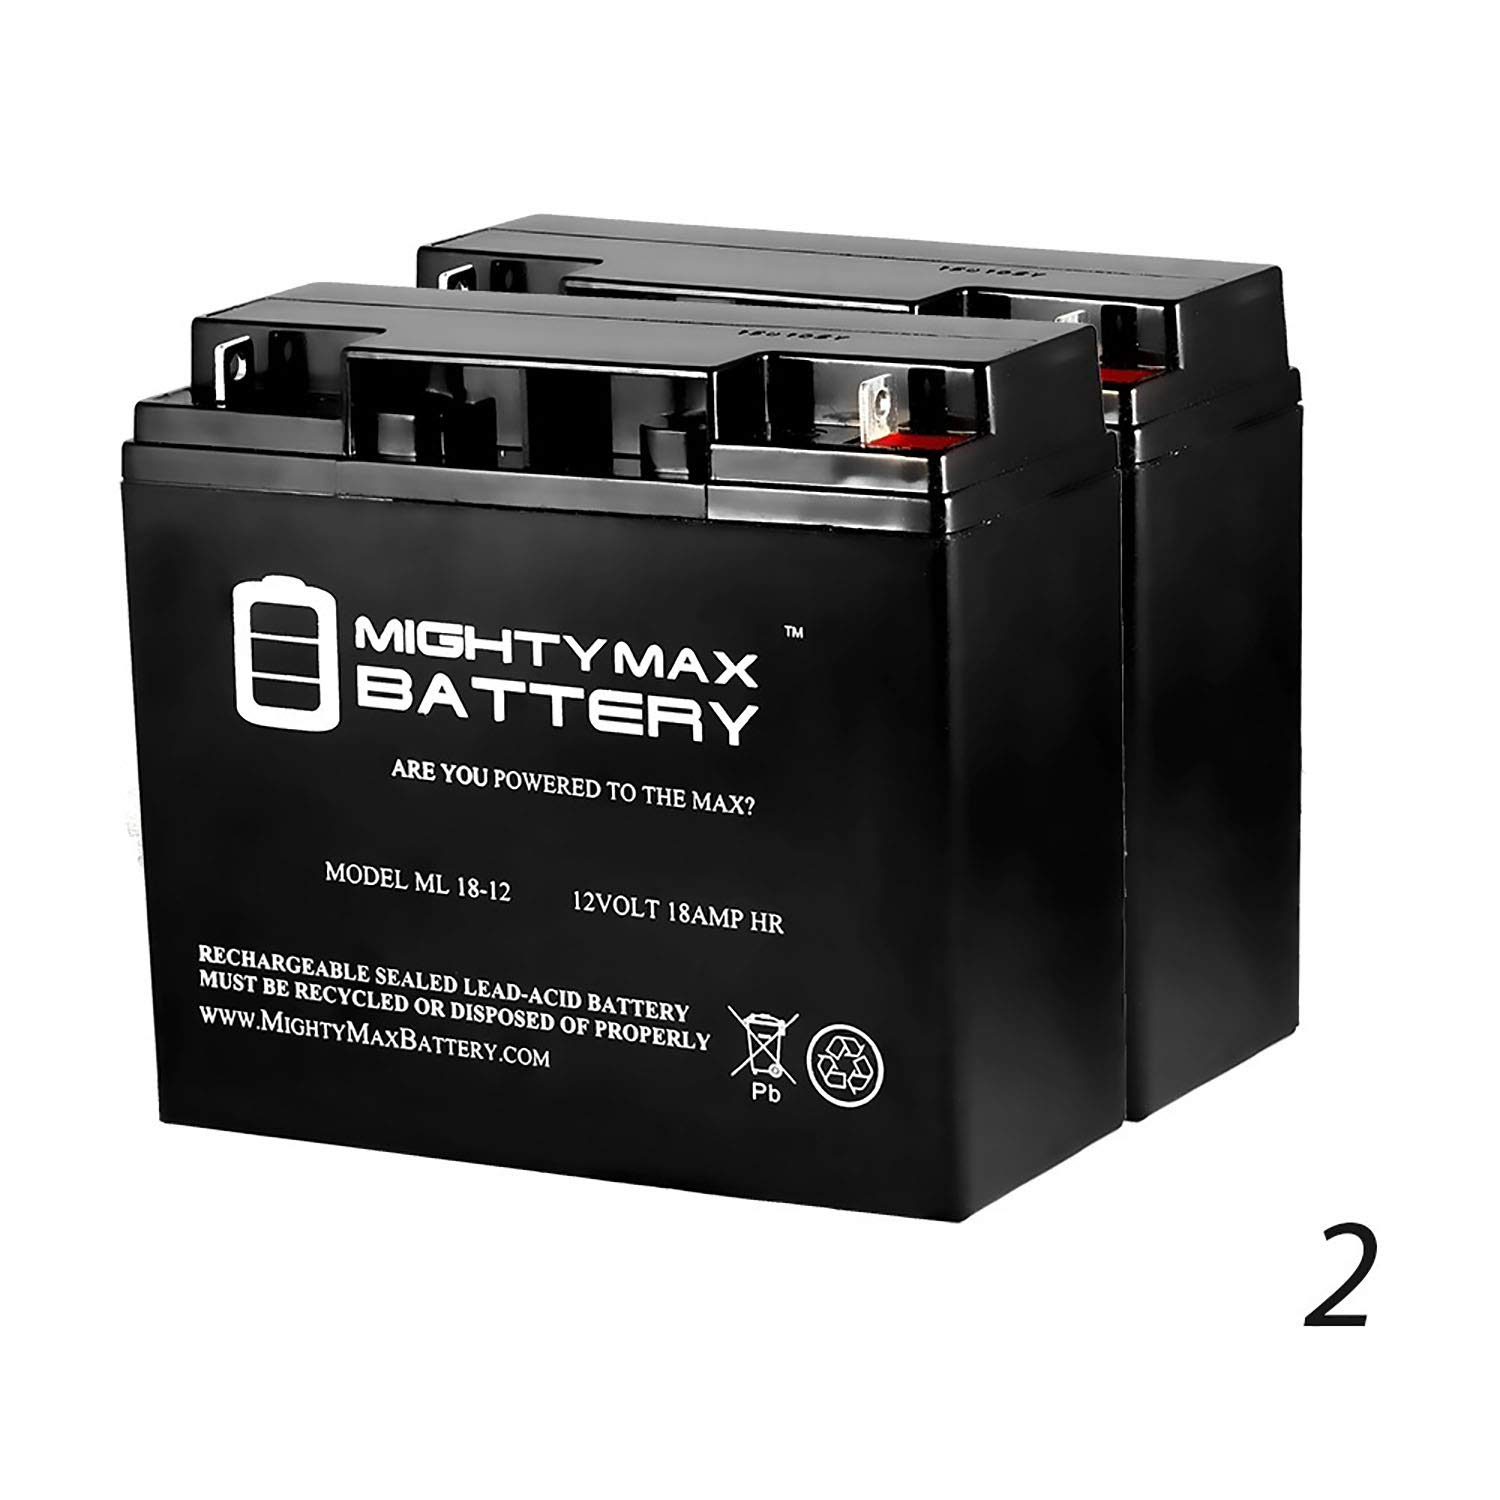 Mighty Max Battery 12V 18AH Battery Replaces BP17-12 GP12170 ES17-12 JC-1270 Enduring 6-DW-17 SLA17-12 - 2 Pack Brand Product